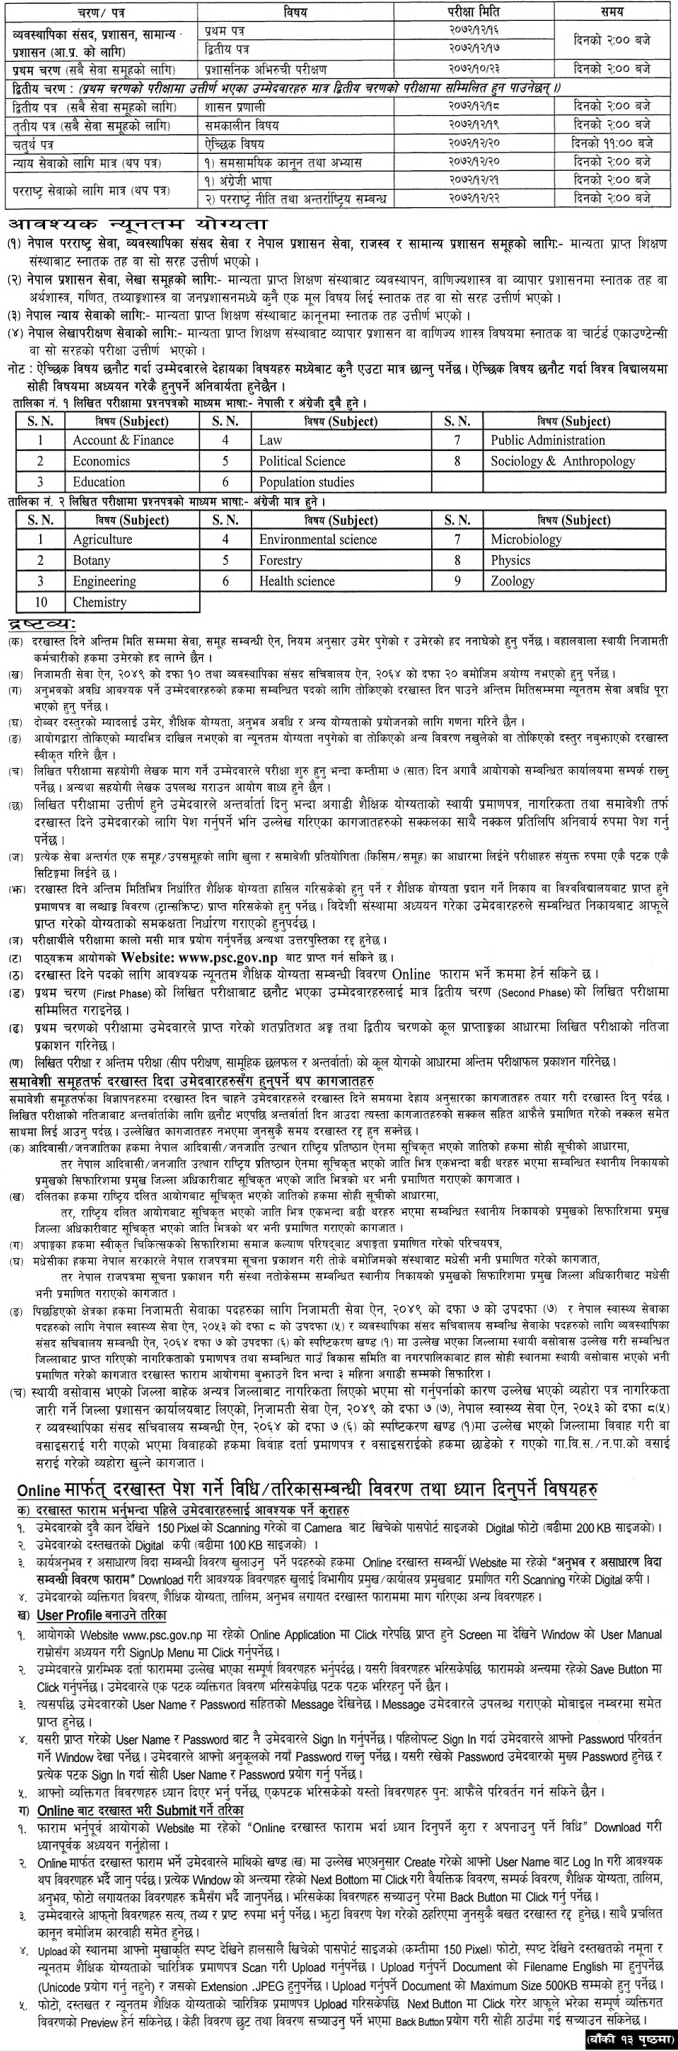 public service commission vacancy  lok sewa aaayog